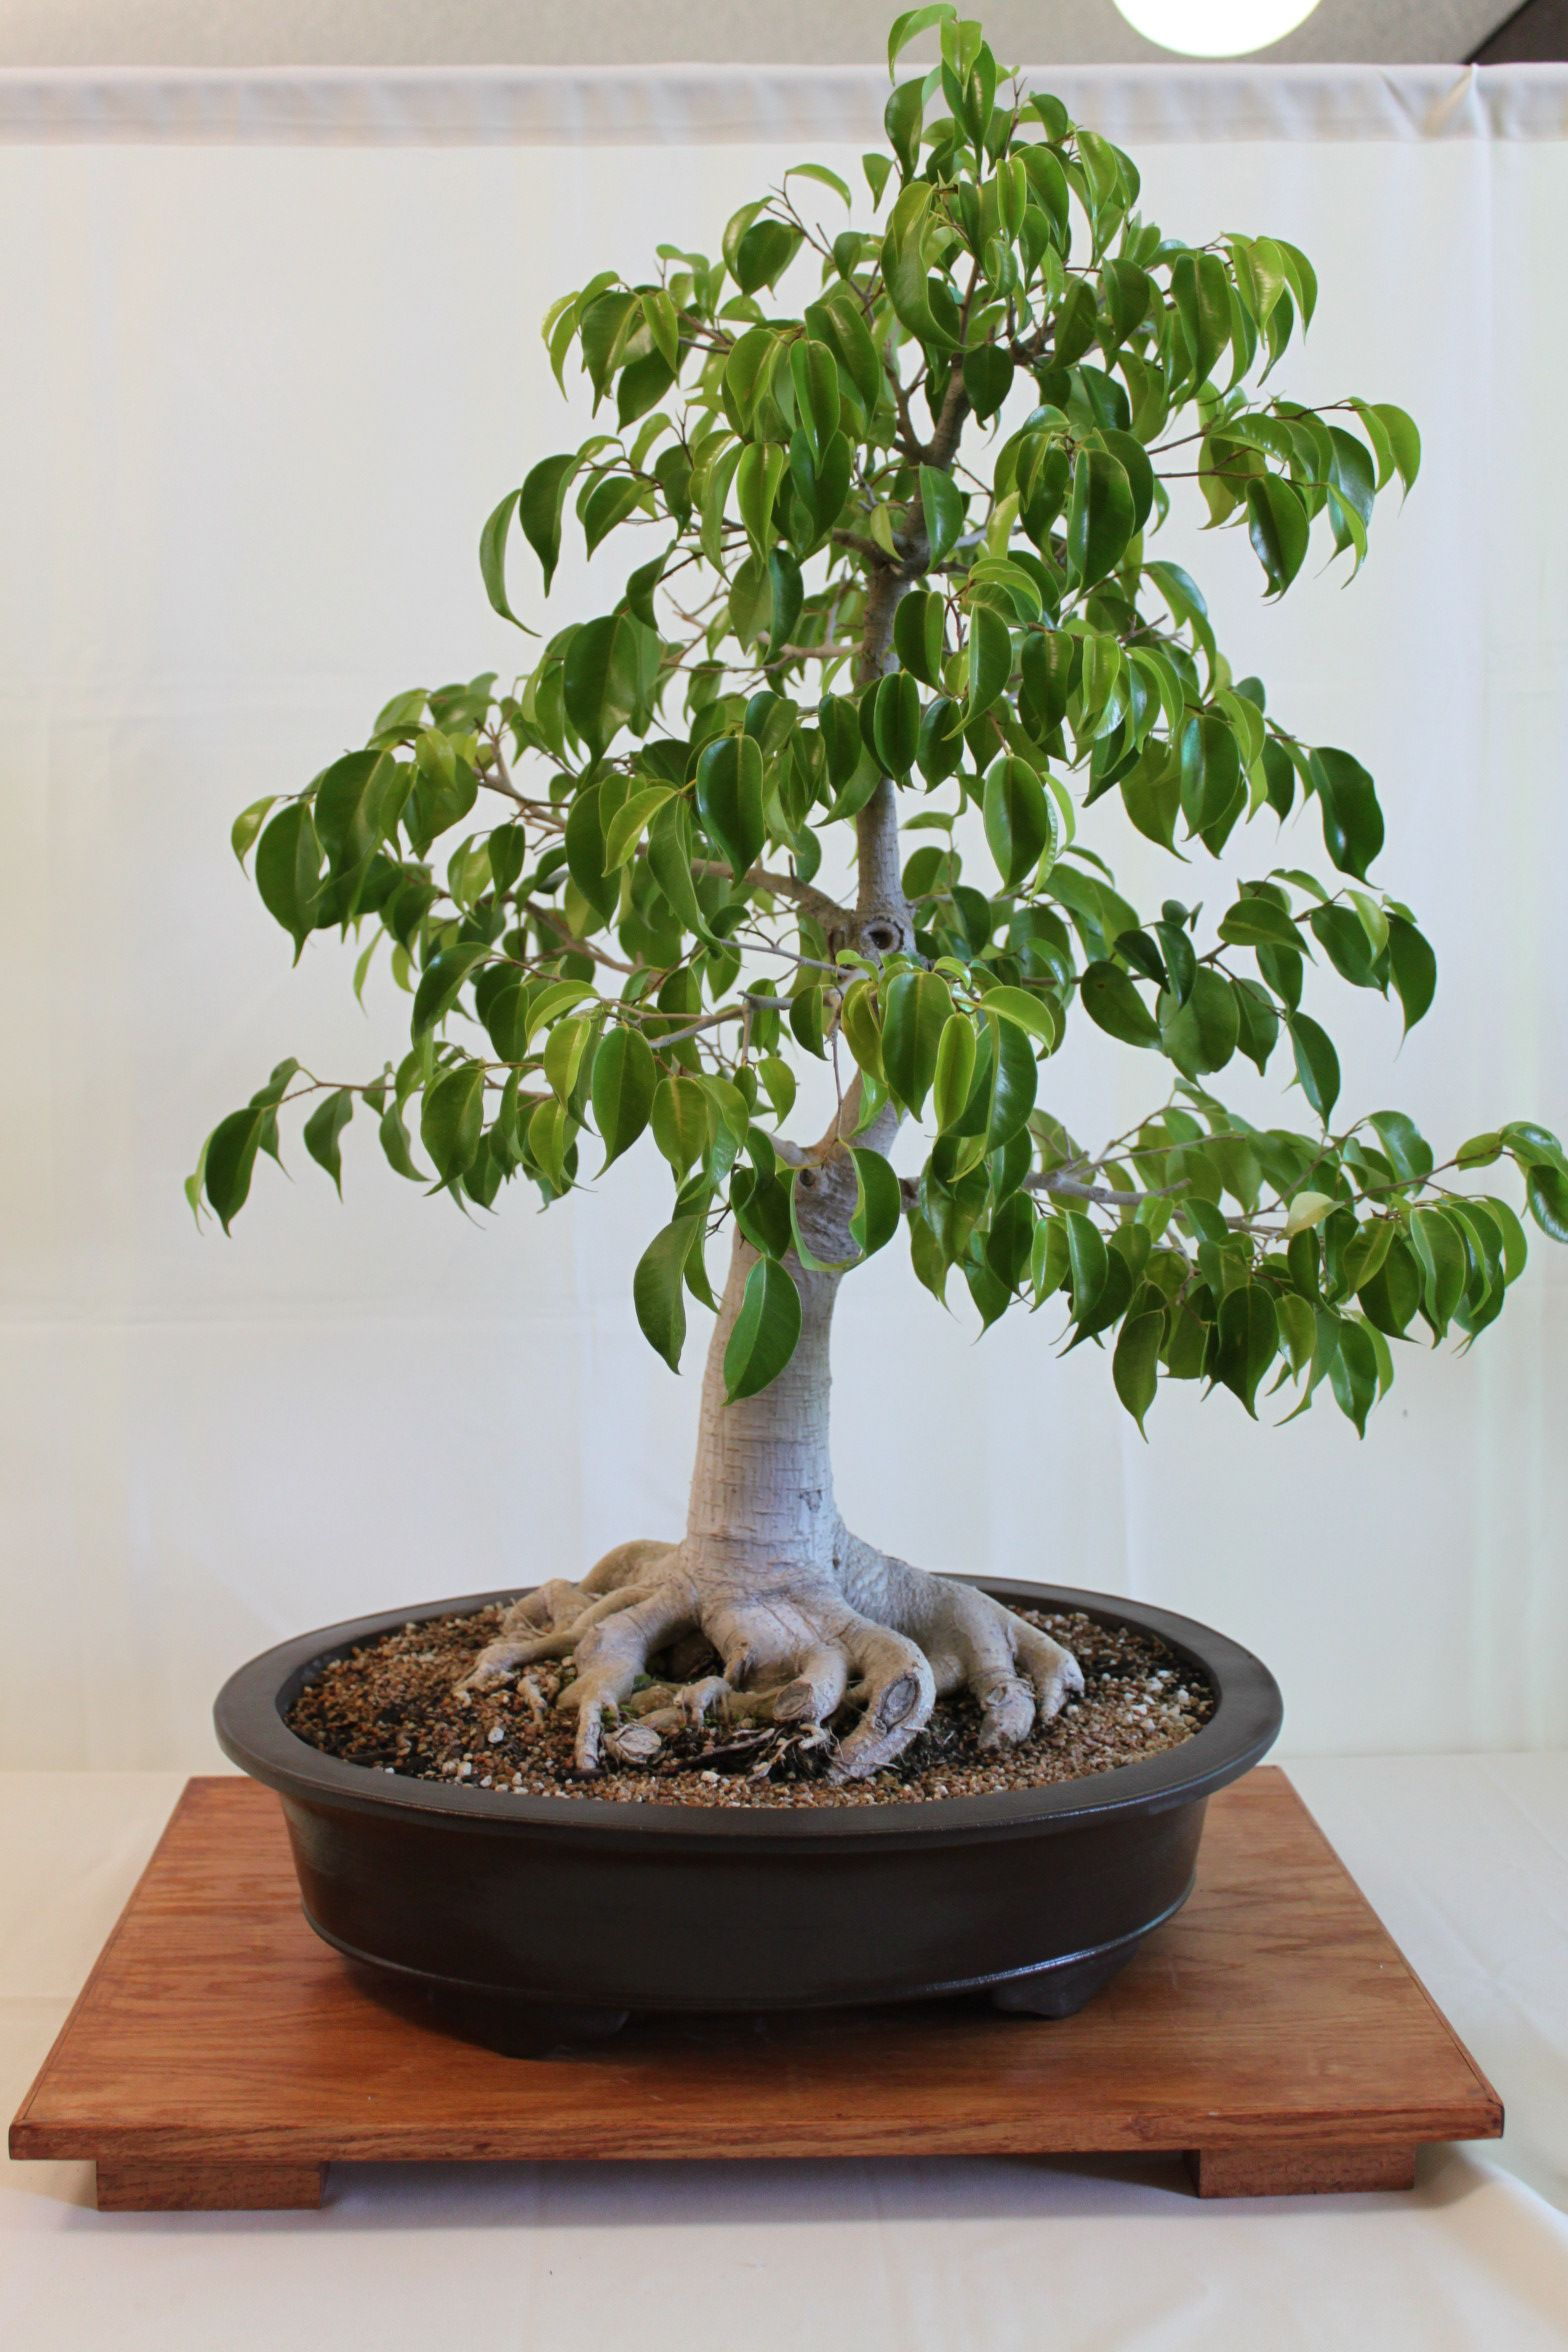 Ficus Tree Care For Your Home | Ficus Tree Is for Good | Pinterest on wisteria tree care, willow tree care, banyan tree care, palm tree care, styrax tree care, bonsai tree care, acacia tree care, petunia tree care, viburnum tree care, ficus microcarpa care, fig tree houseplant care, fig leaf ficus care, fuchsia tree care, brush cherry tree care, mussaenda tree care, solanum tree care, arboricola tree care, indoor ficus care, pachira tree care, callistemon tree care,